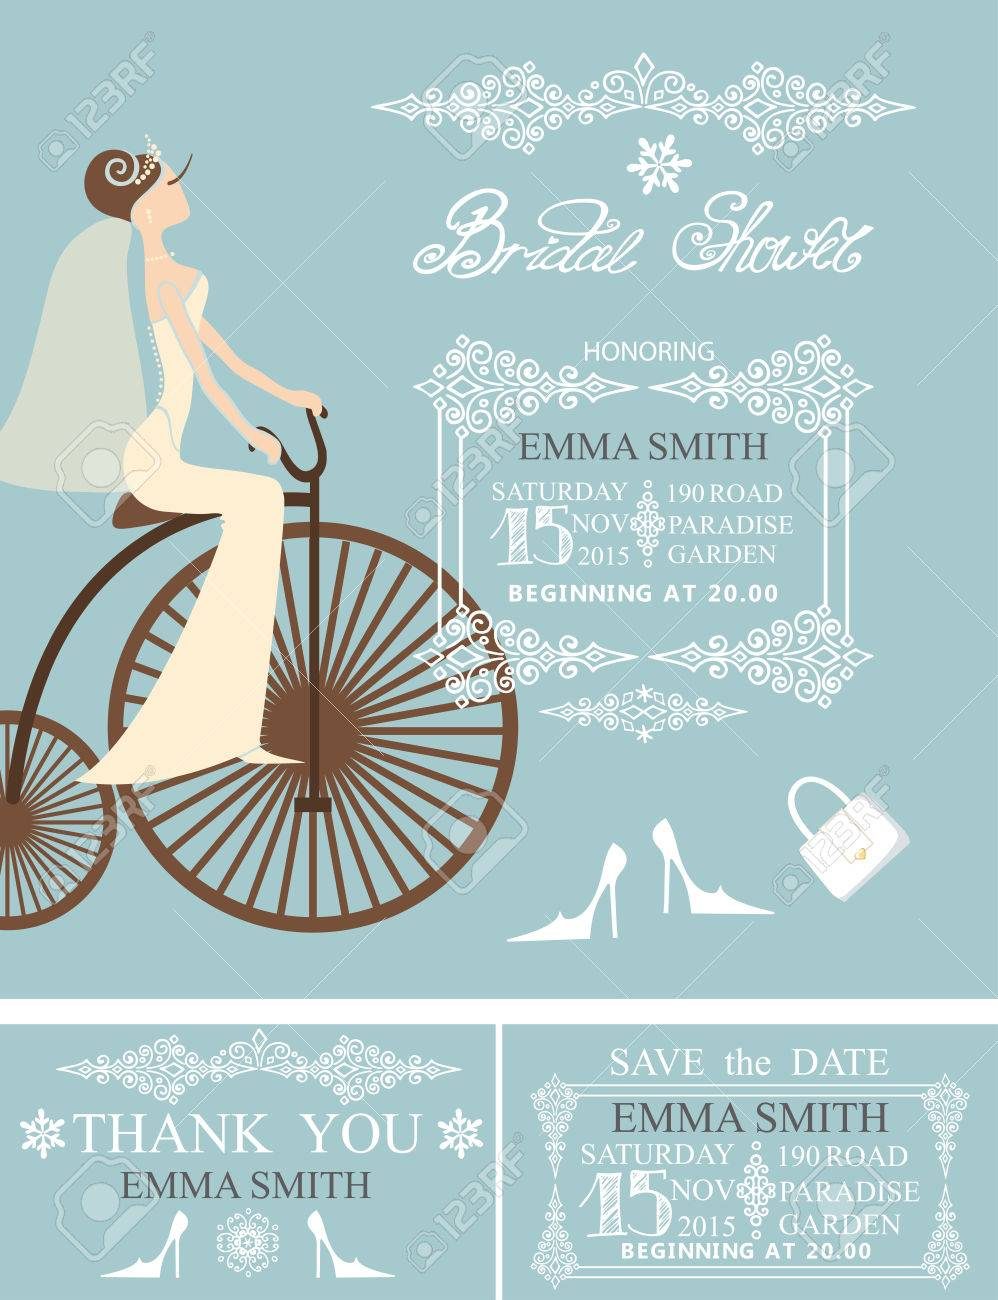 Wedding bridal shower invitation setide in wedding dress on vector wedding bridal shower invitation setide in wedding dress on retro bicycle borderframesletteringretro designwinter season save the date card filmwisefo